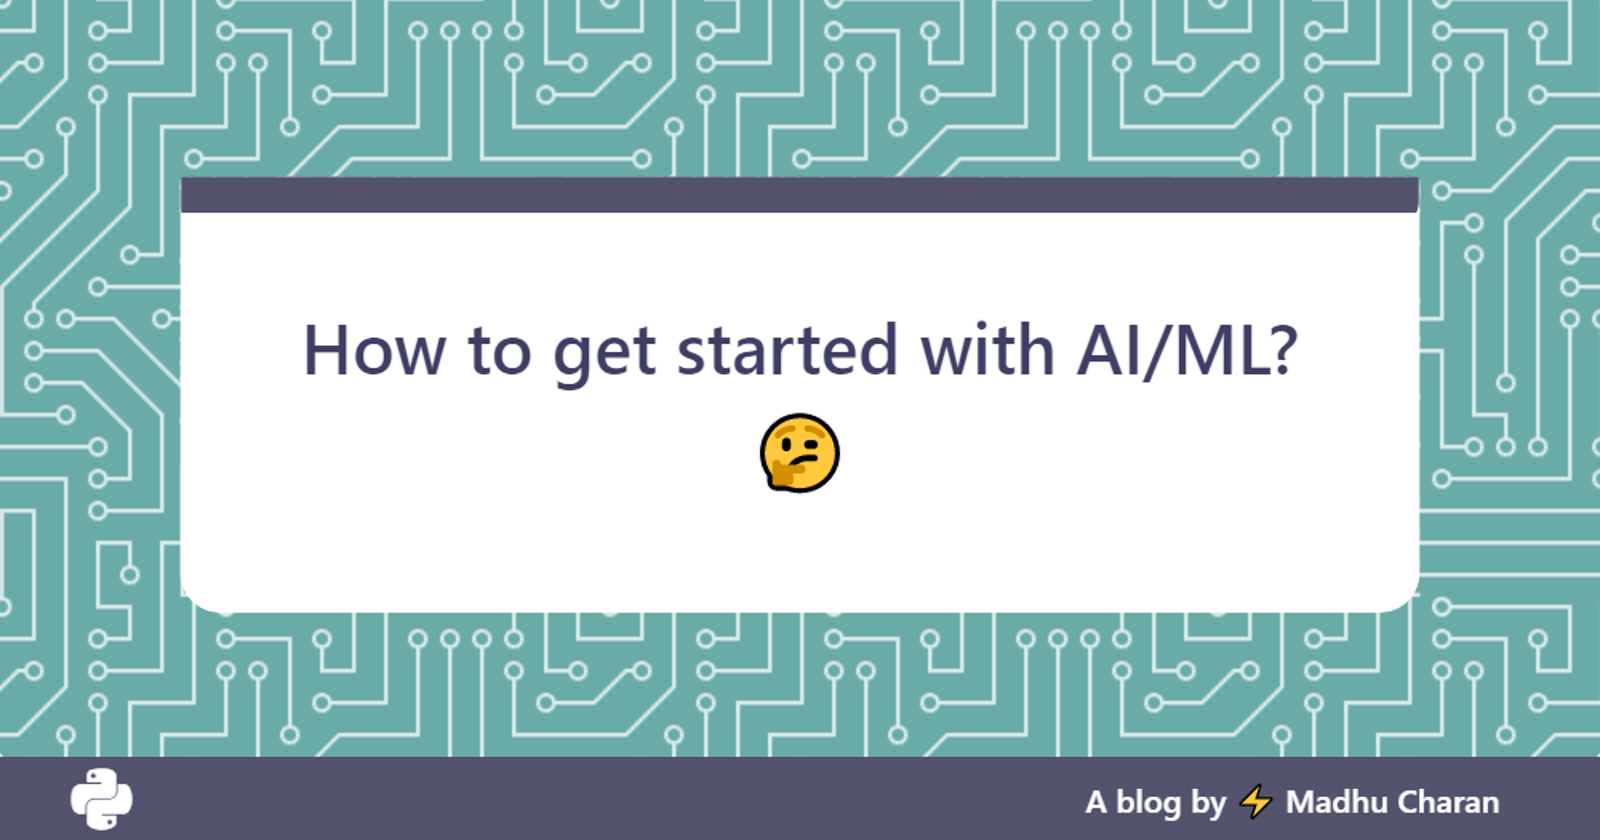 How to get started with AI or ML?